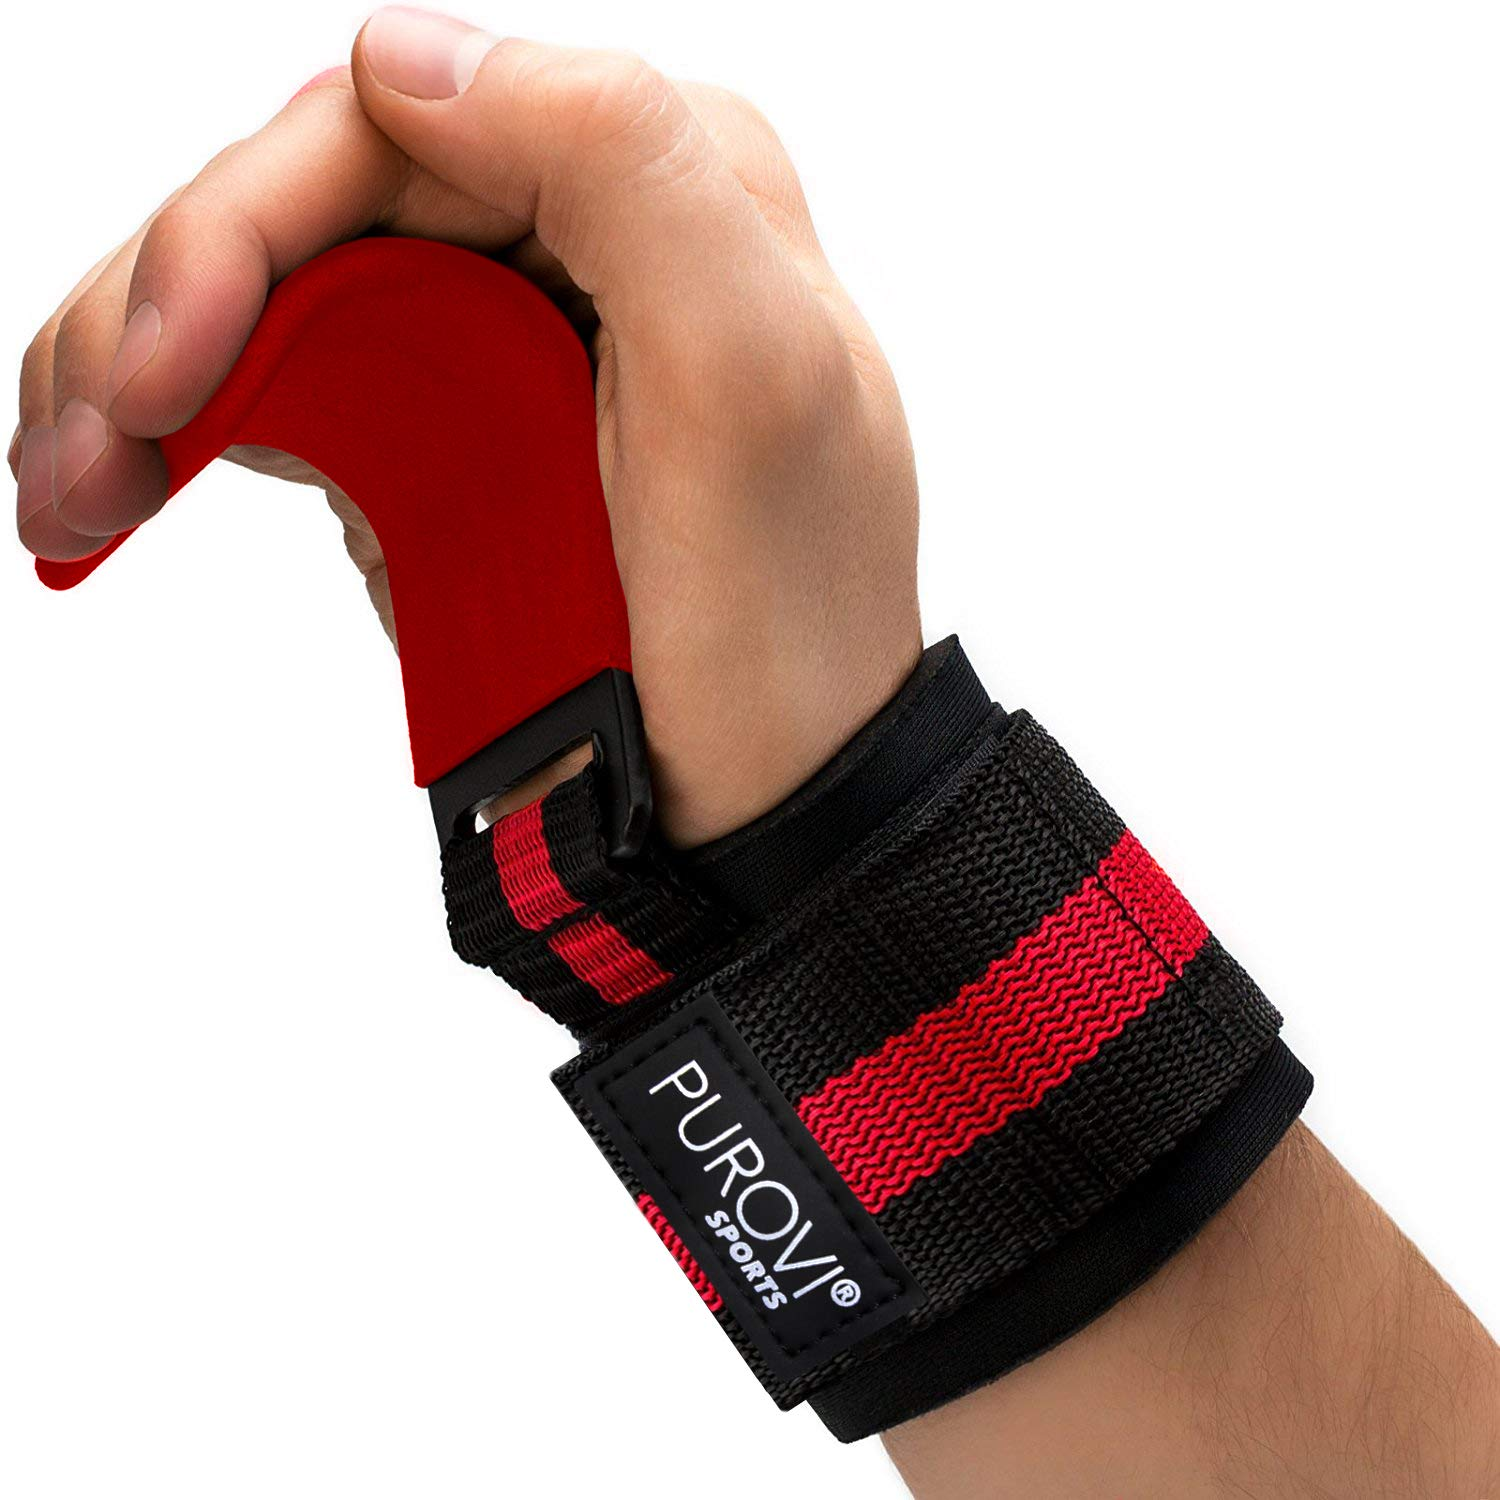 Vettler Sports® Weight Lifting Straps | Crossfit Wrist Wraps | Perfect for Bodybuilding Training Workout Crossfit | Hook and Loop Adjustable Closure VS-ZH1